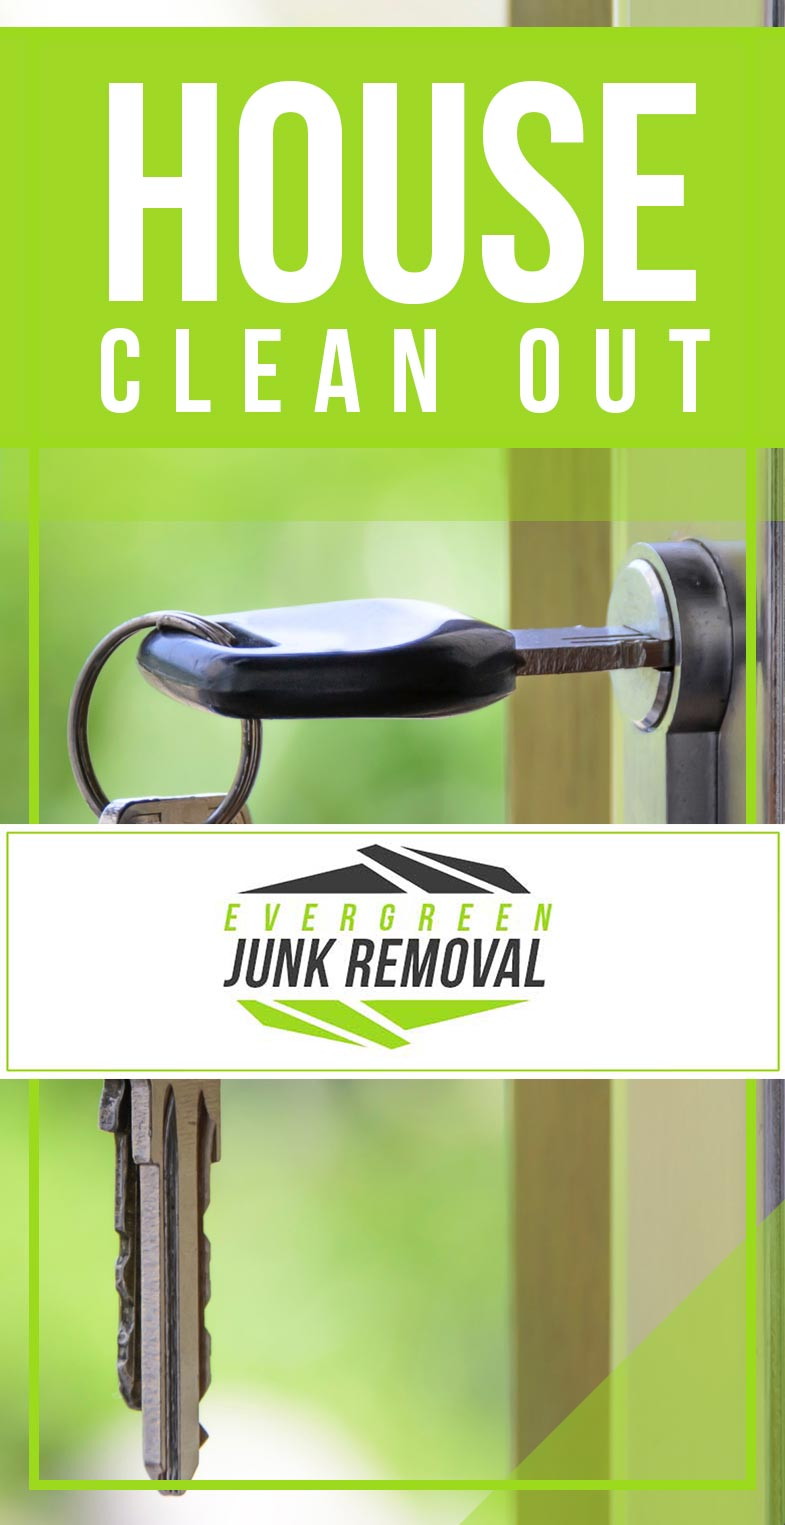 Junk Removal Belle Glade House Clean Out